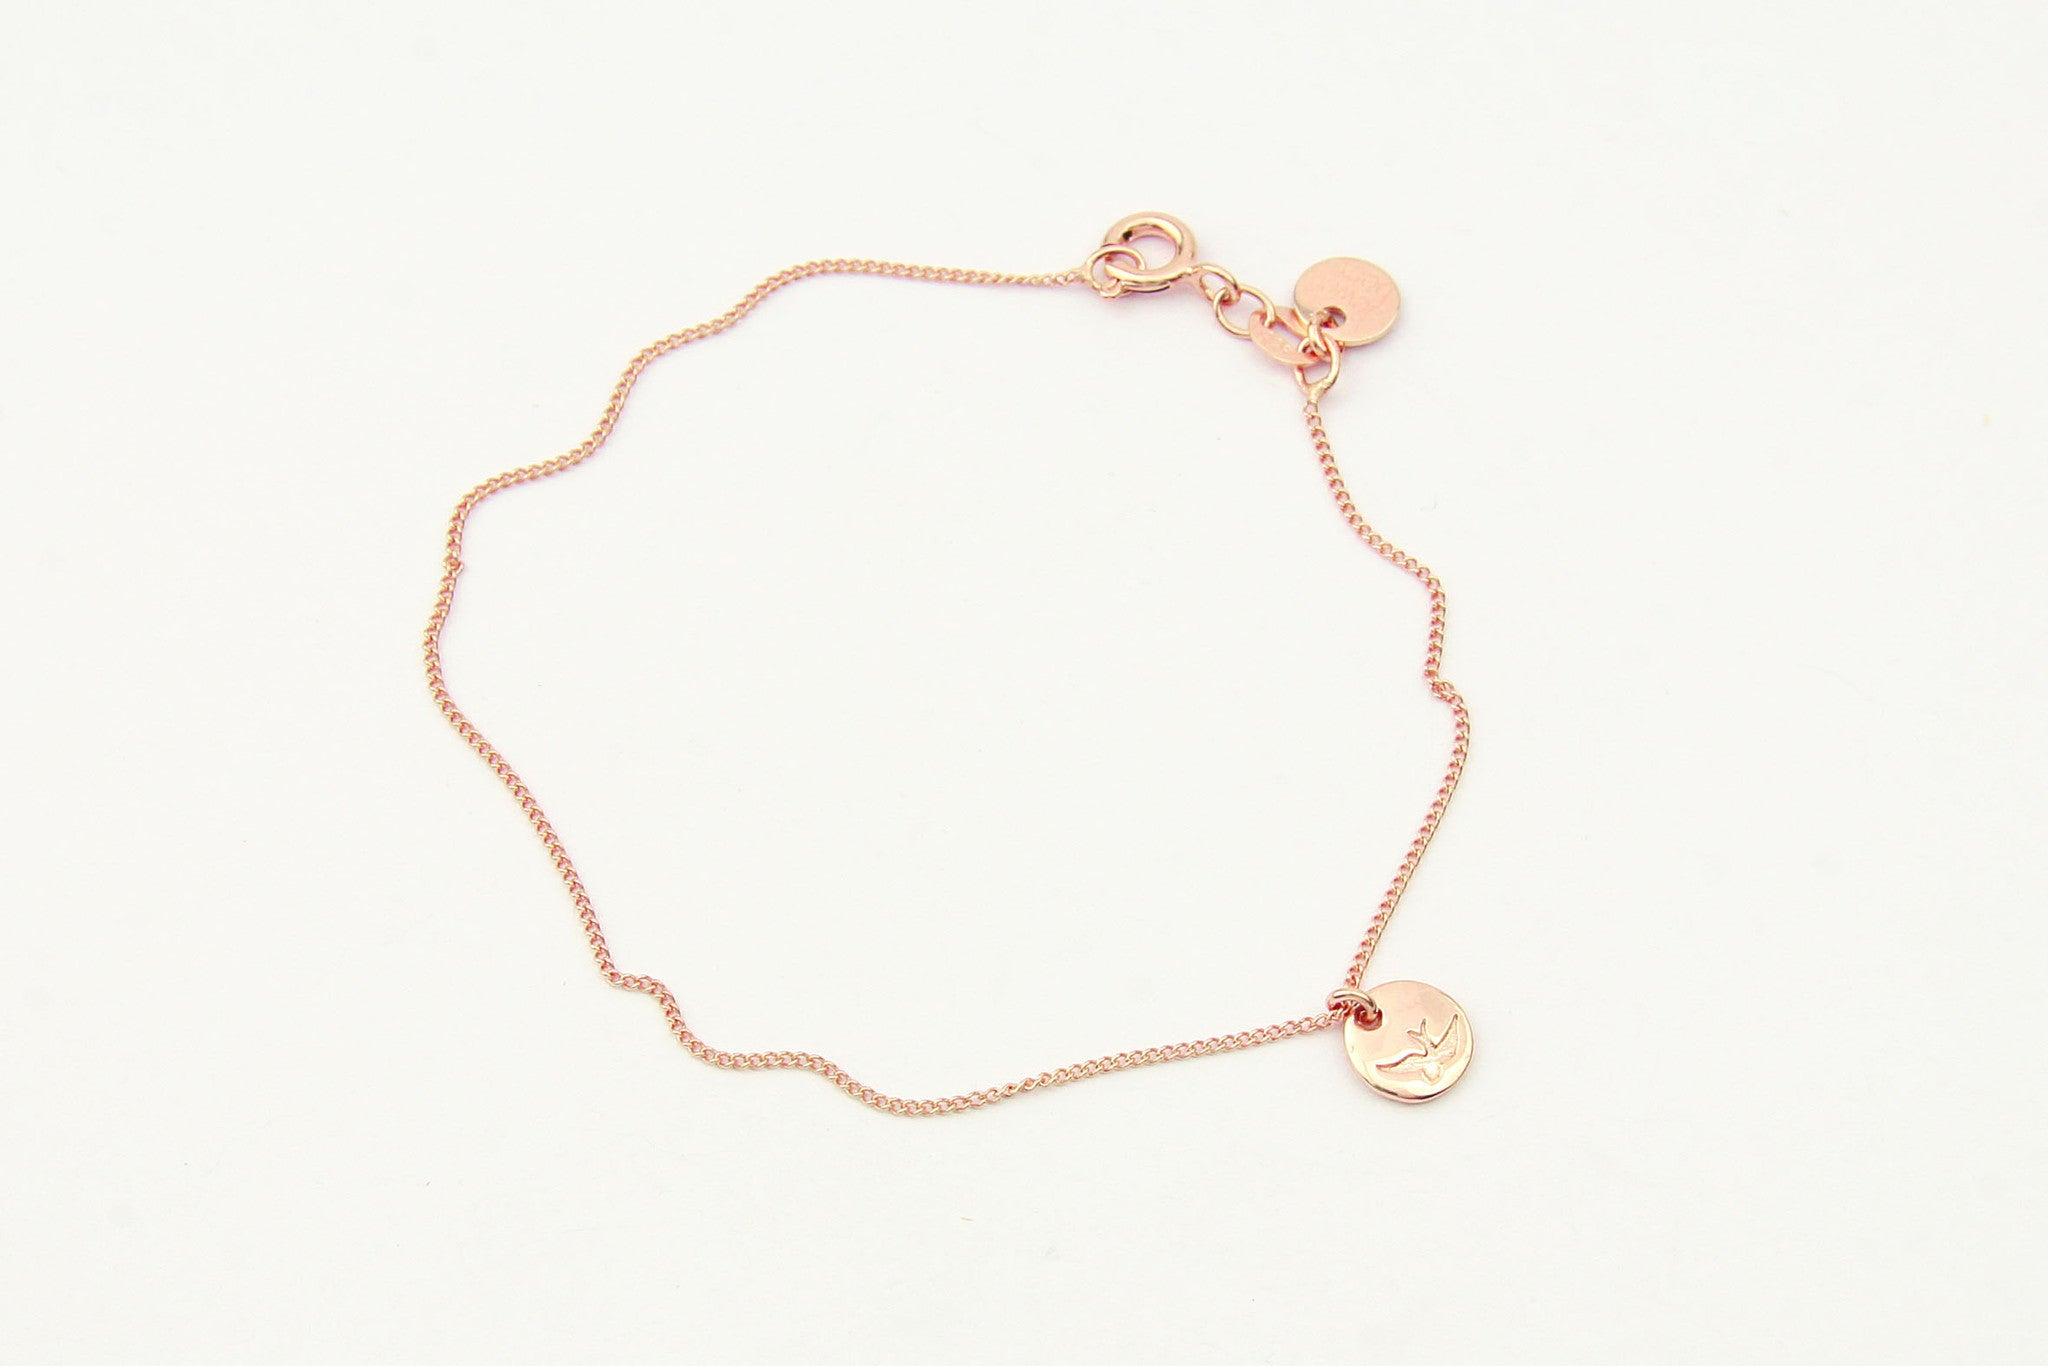 jewelberry armband bracelet bird token rose gold plated sterling silver fine jewelry handmade with love fairtrade anchor chain